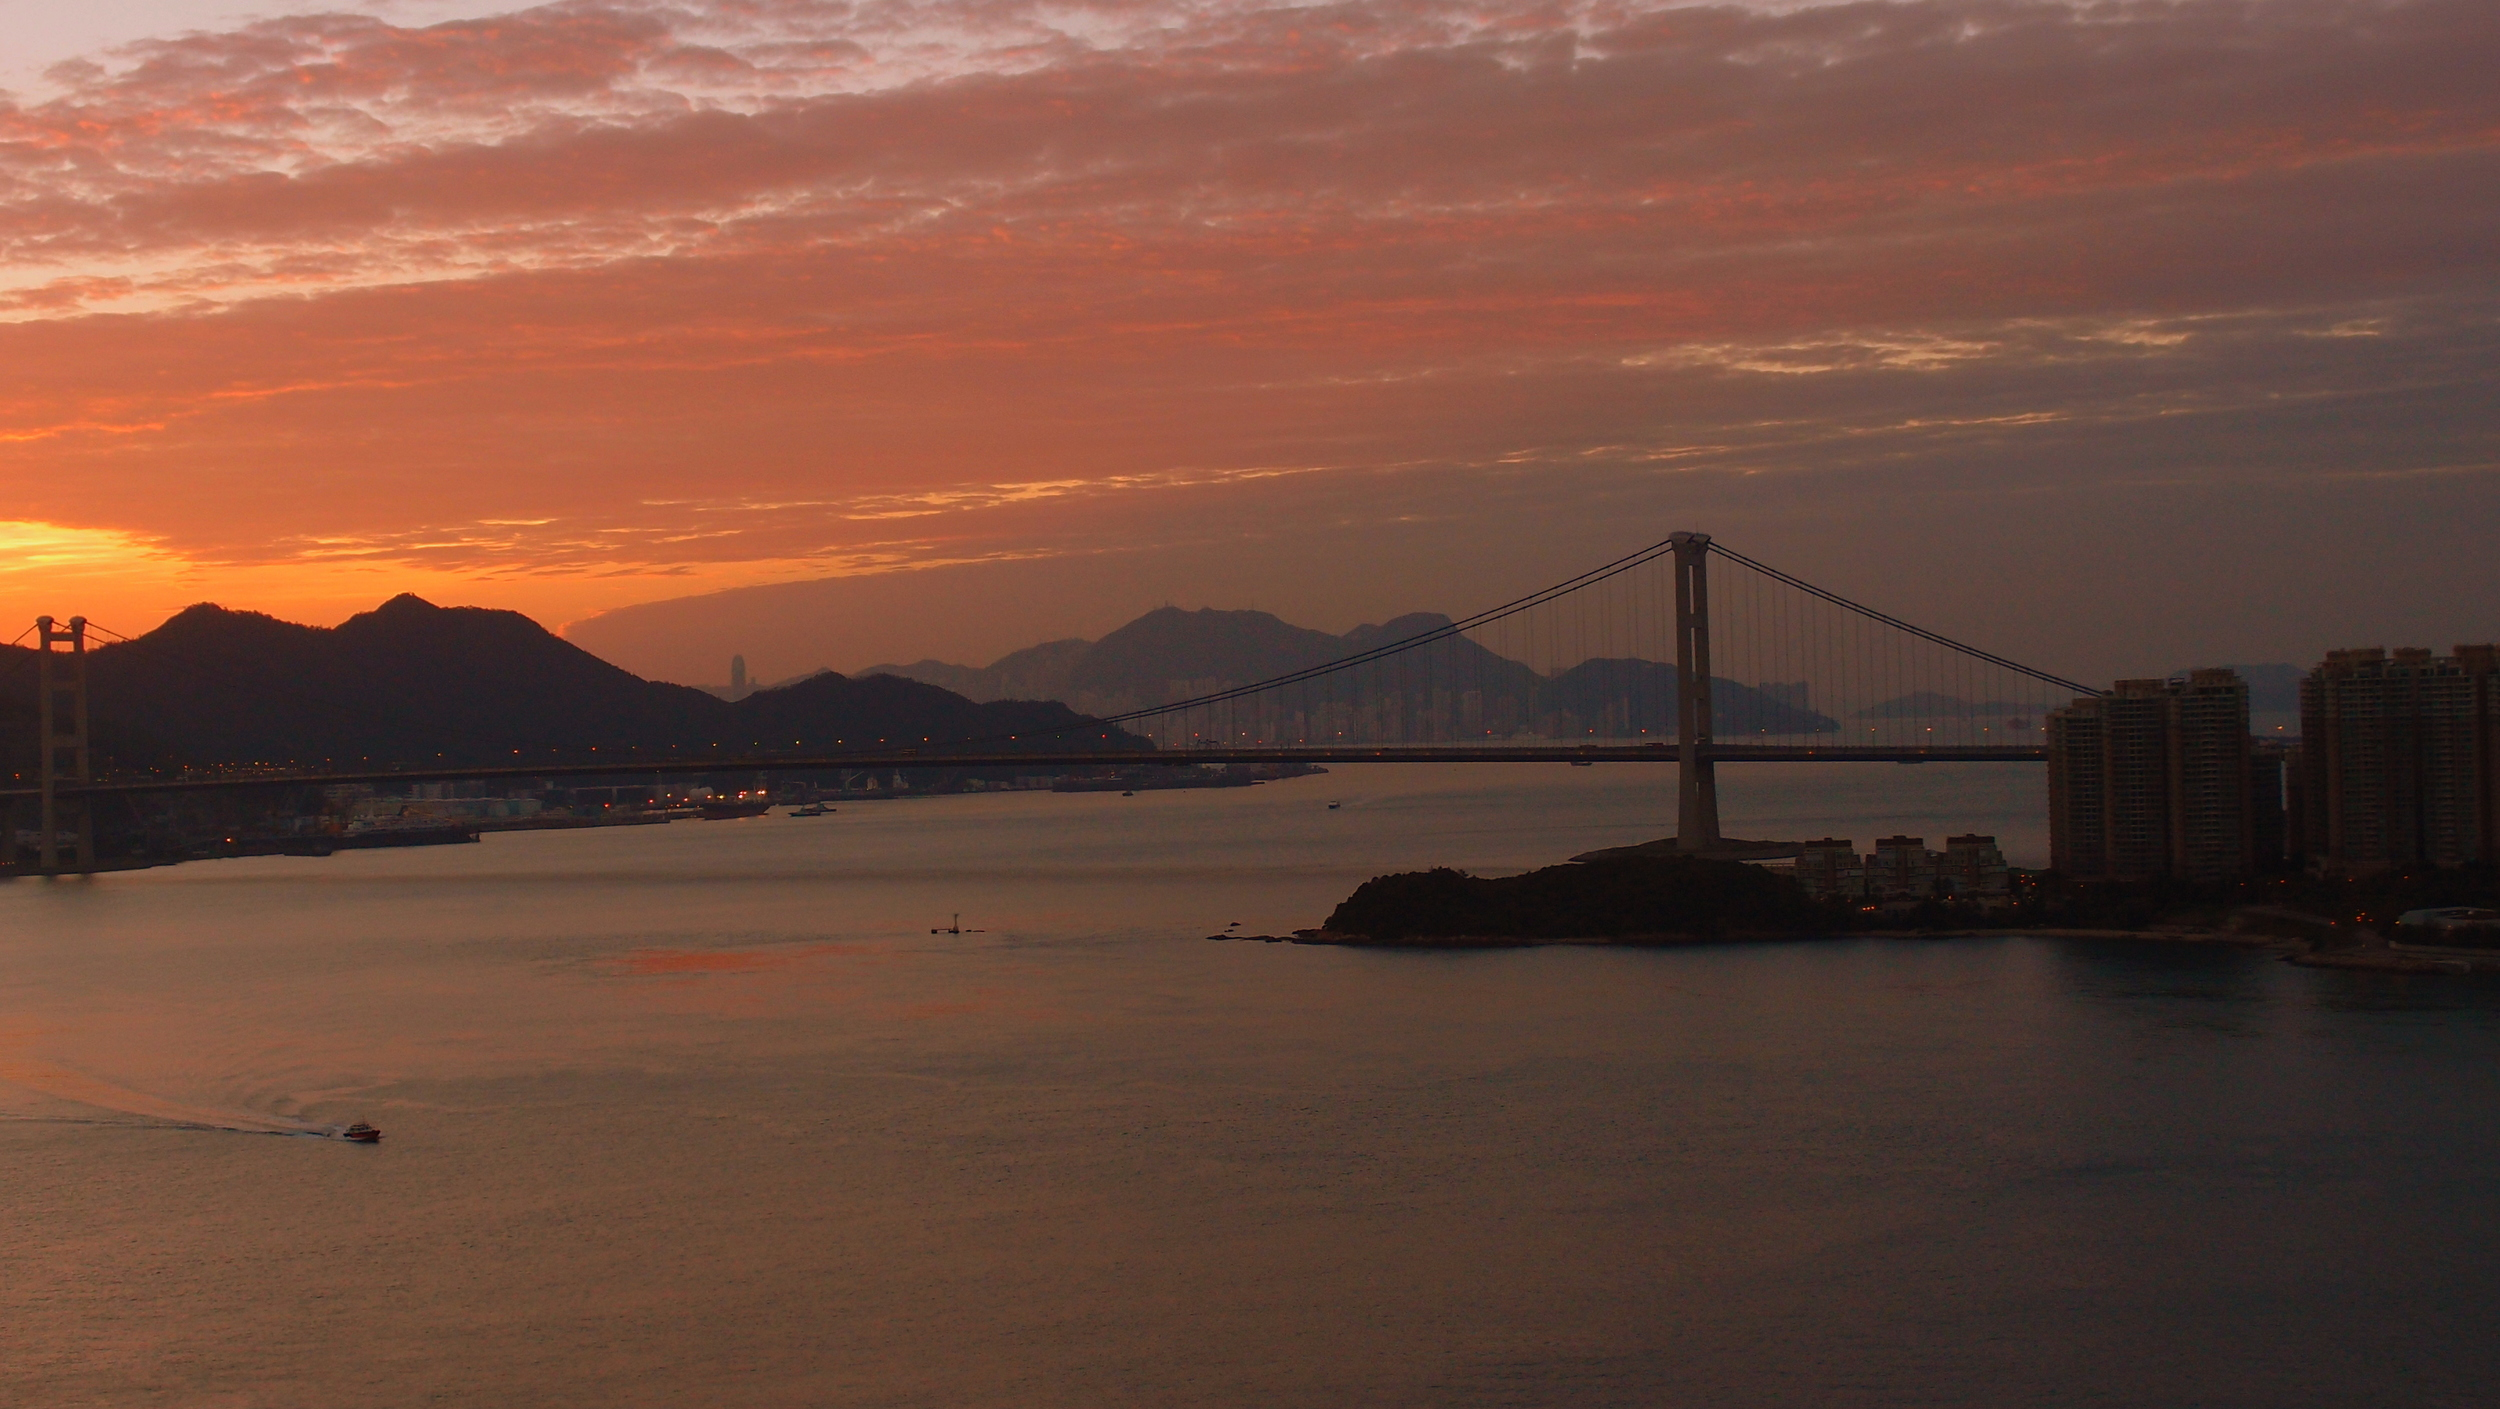 Sunrise this morning from my balcony - it is going to be a very clear day